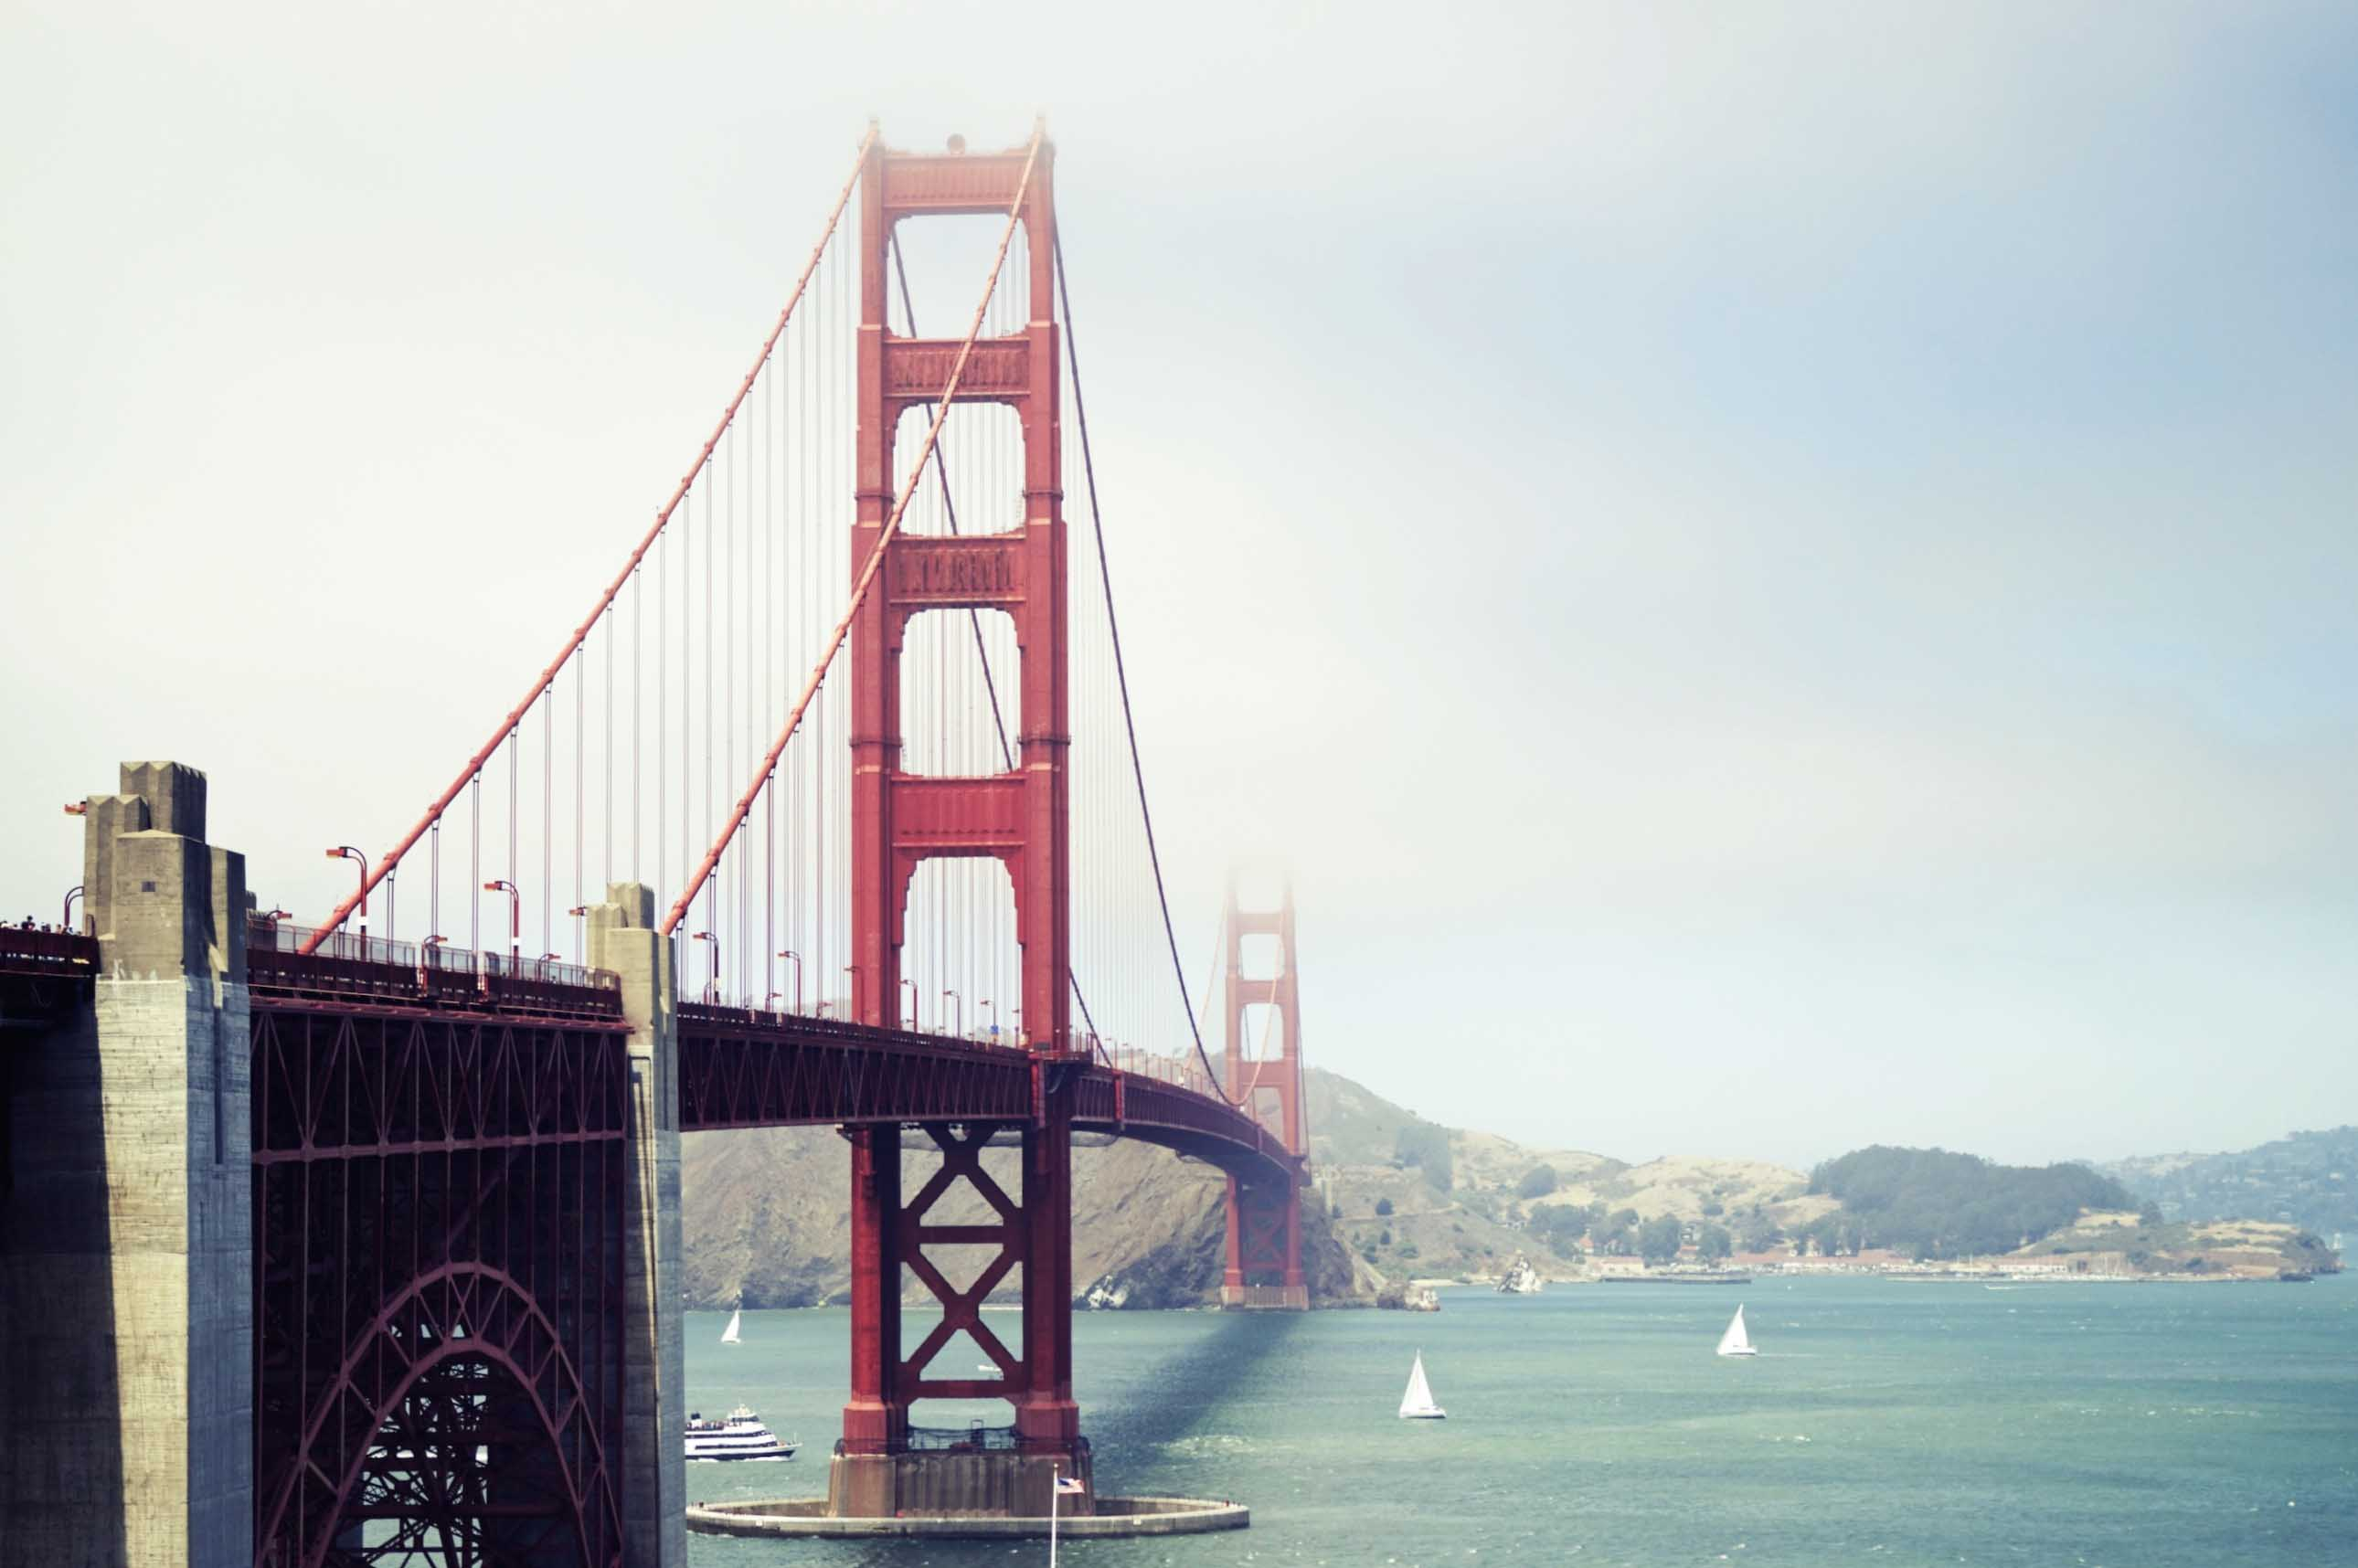 san_francisco_bridge-2580x1716.jpg